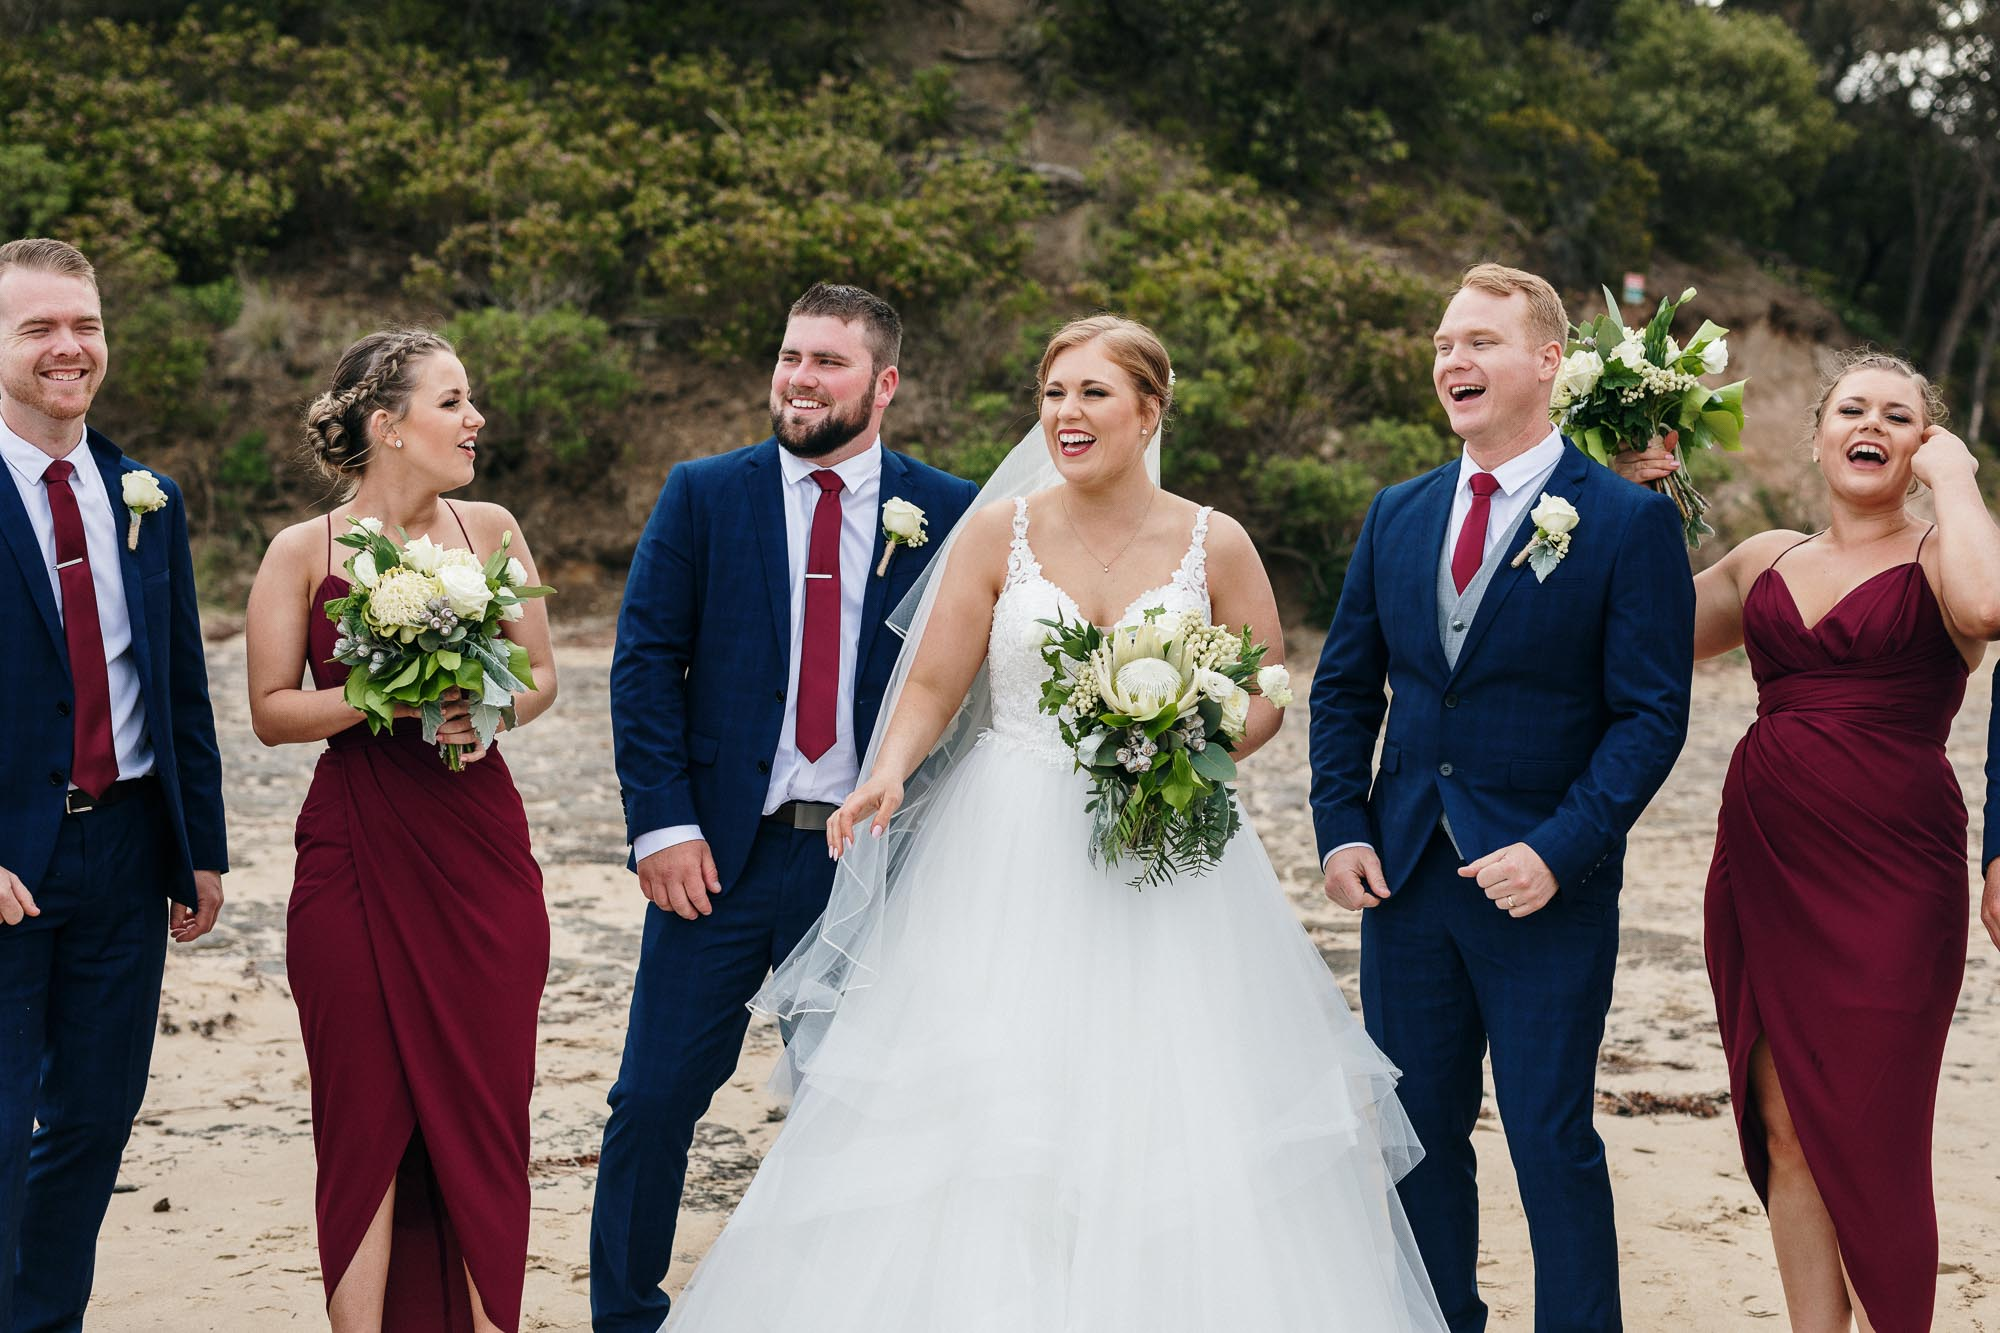 lachlan-scallion-alana-andrew-melbourne-mornington-peninsula-merricksgeneralwinestore-relaxed-candid-wedding-photography-393.jpg